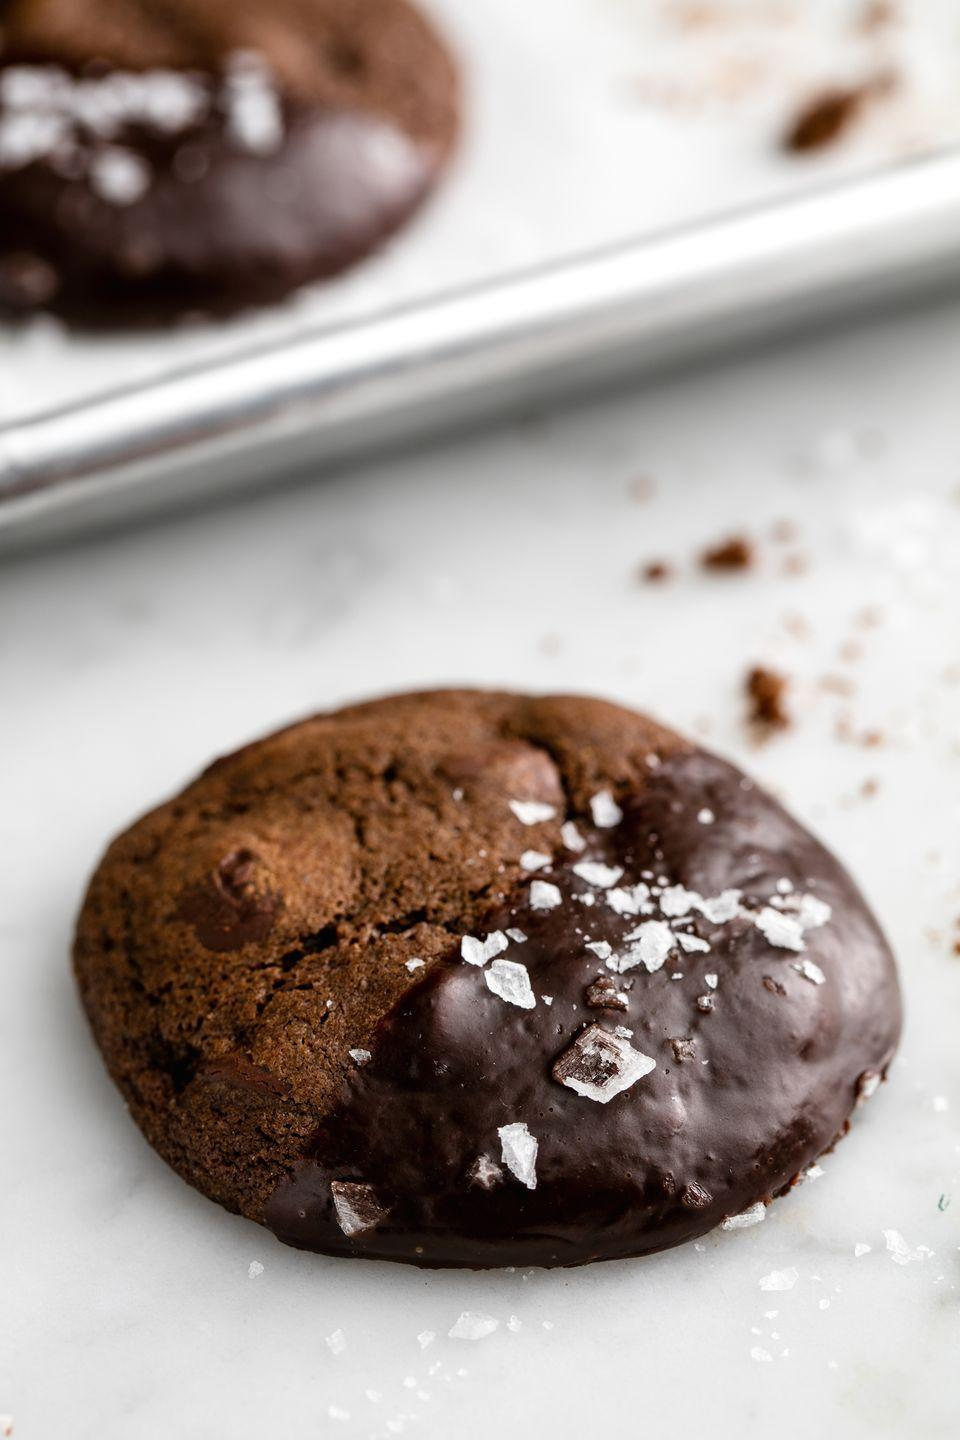 """<p>You've been warned.</p><p>Get the recipe from <a href=""""https://www.delish.com/cooking/recipe-ideas/recipes/a50447/death-by-chocolate-cookies-recipe/"""" rel=""""nofollow noopener"""" target=""""_blank"""" data-ylk=""""slk:Delish"""" class=""""link rapid-noclick-resp"""">Delish</a>. </p>"""